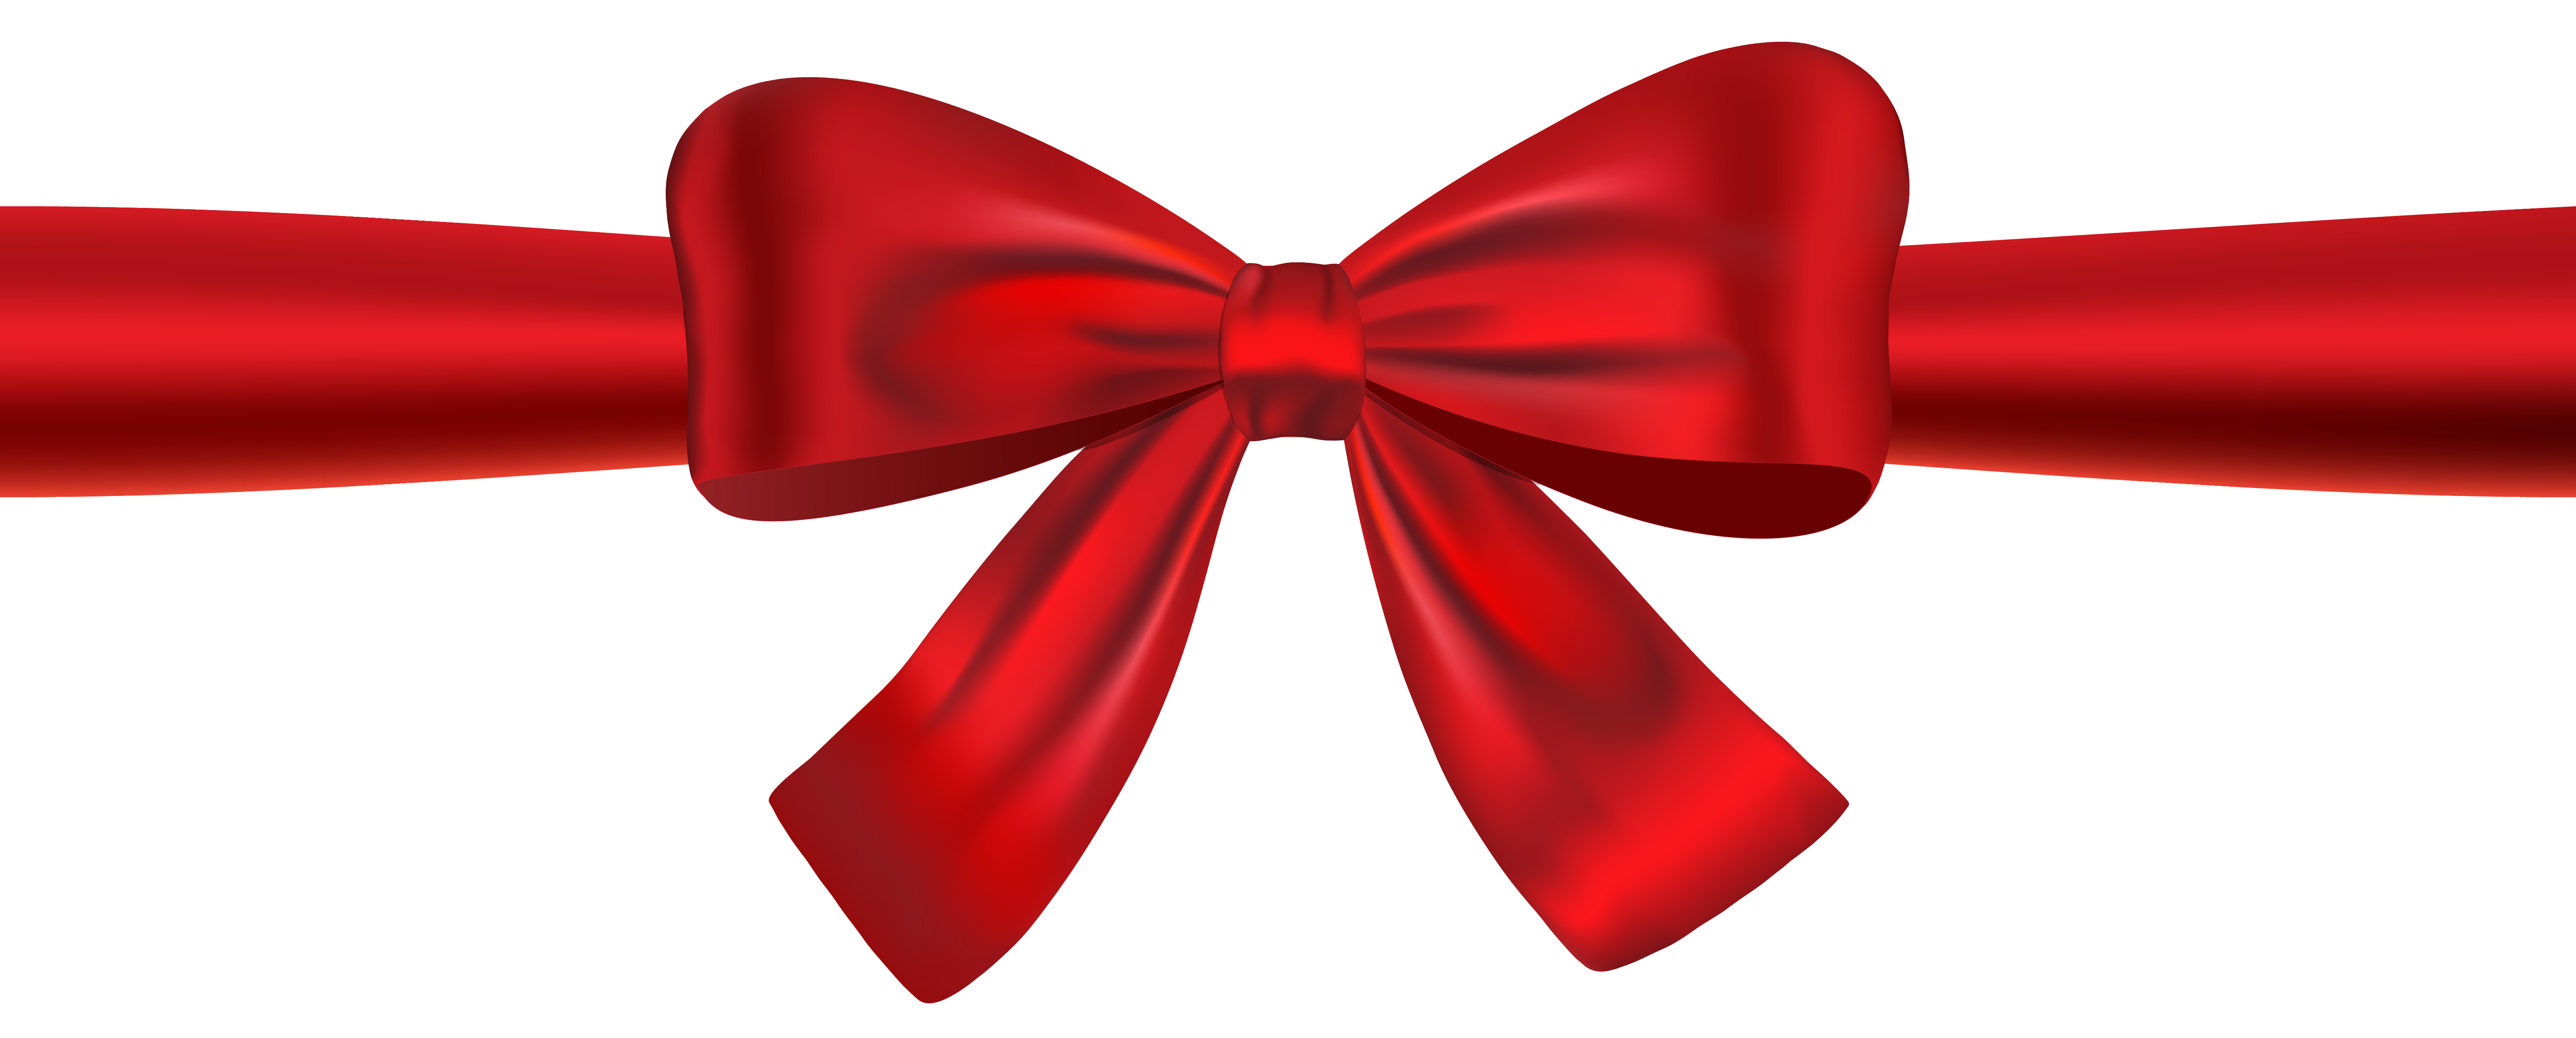 Red Hair clipart red bow #15